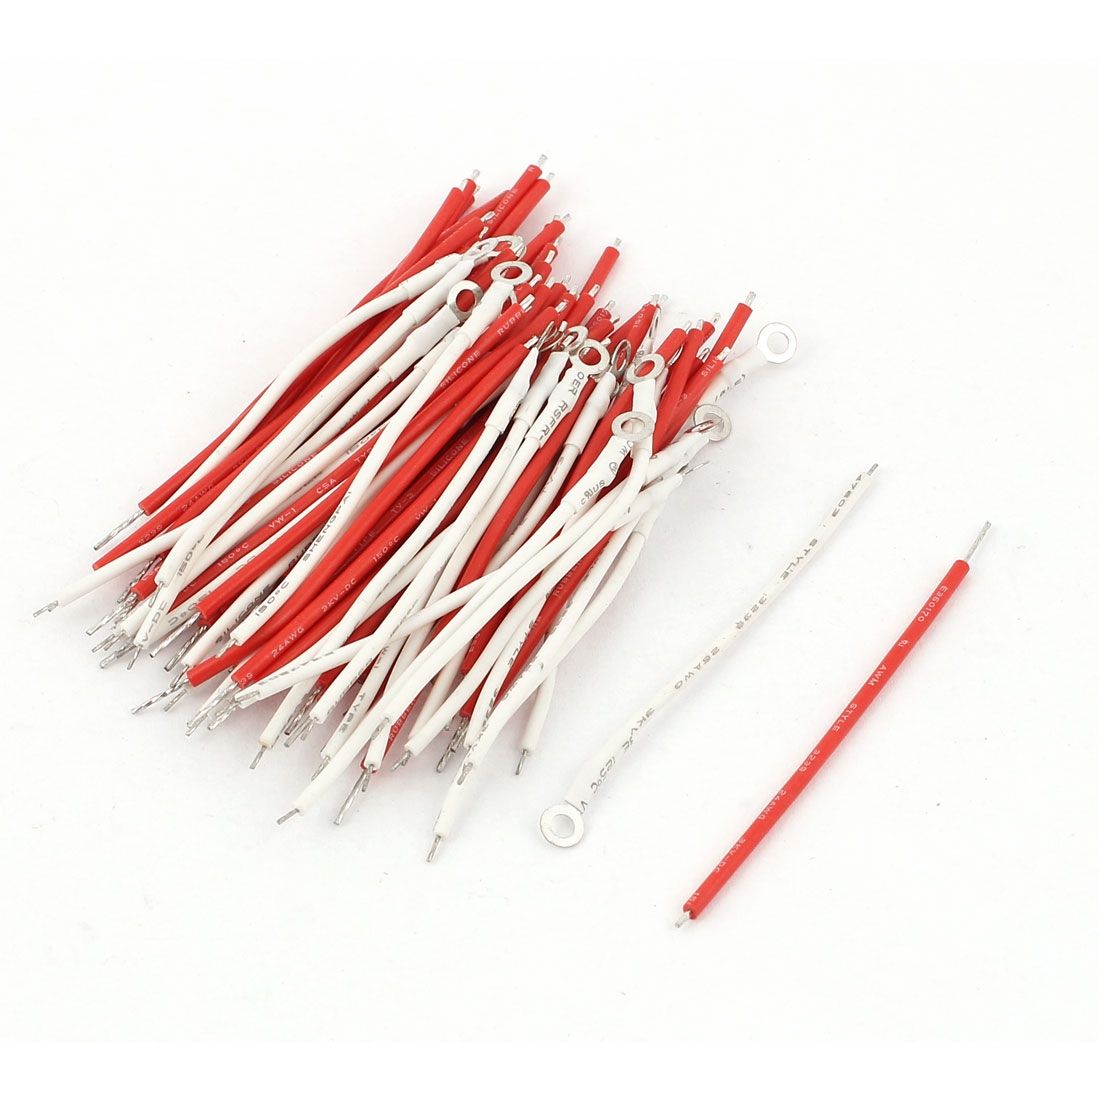 80Pcs 26AWG 3KV 6cm Long Tin Plated Lead Wire Cable Red White